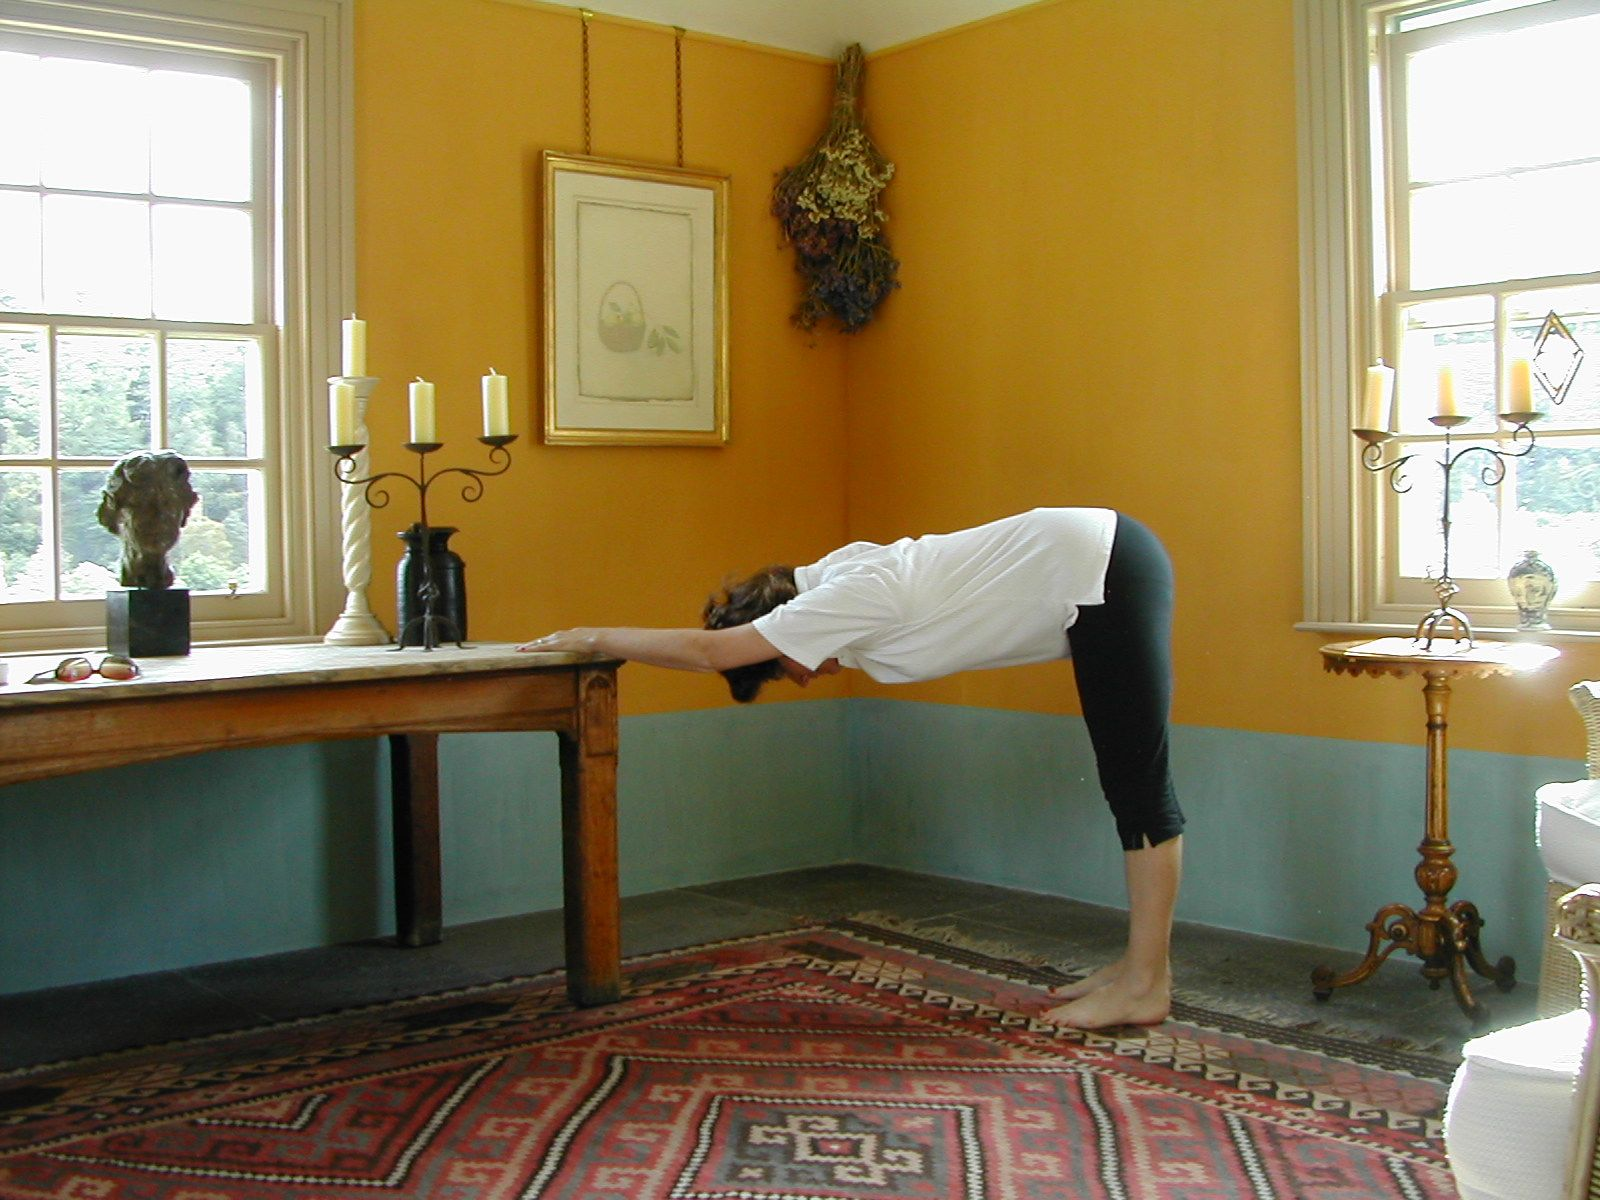 Table Stretch is exercise 5 in Sarah Key's list of the best yoga for lower back pain